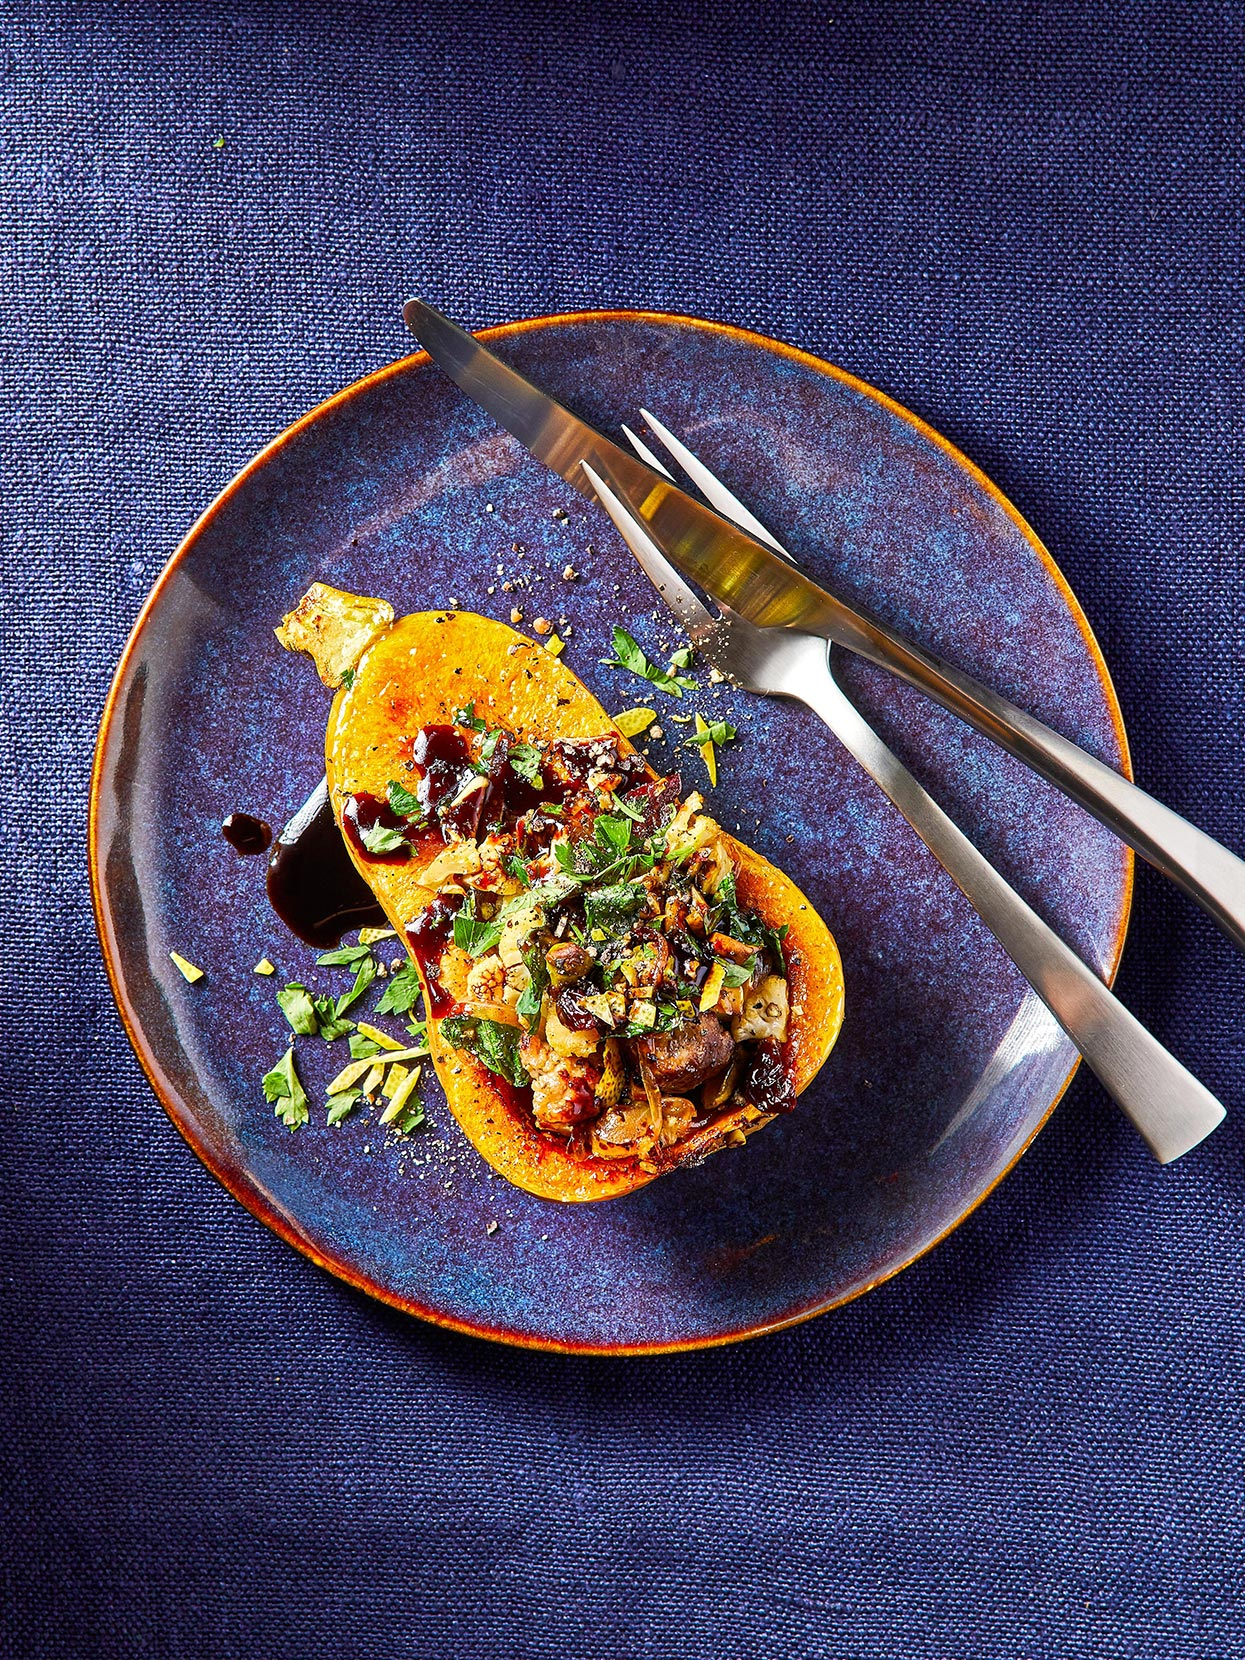 Sausage-Stuffed Honeynut Squash